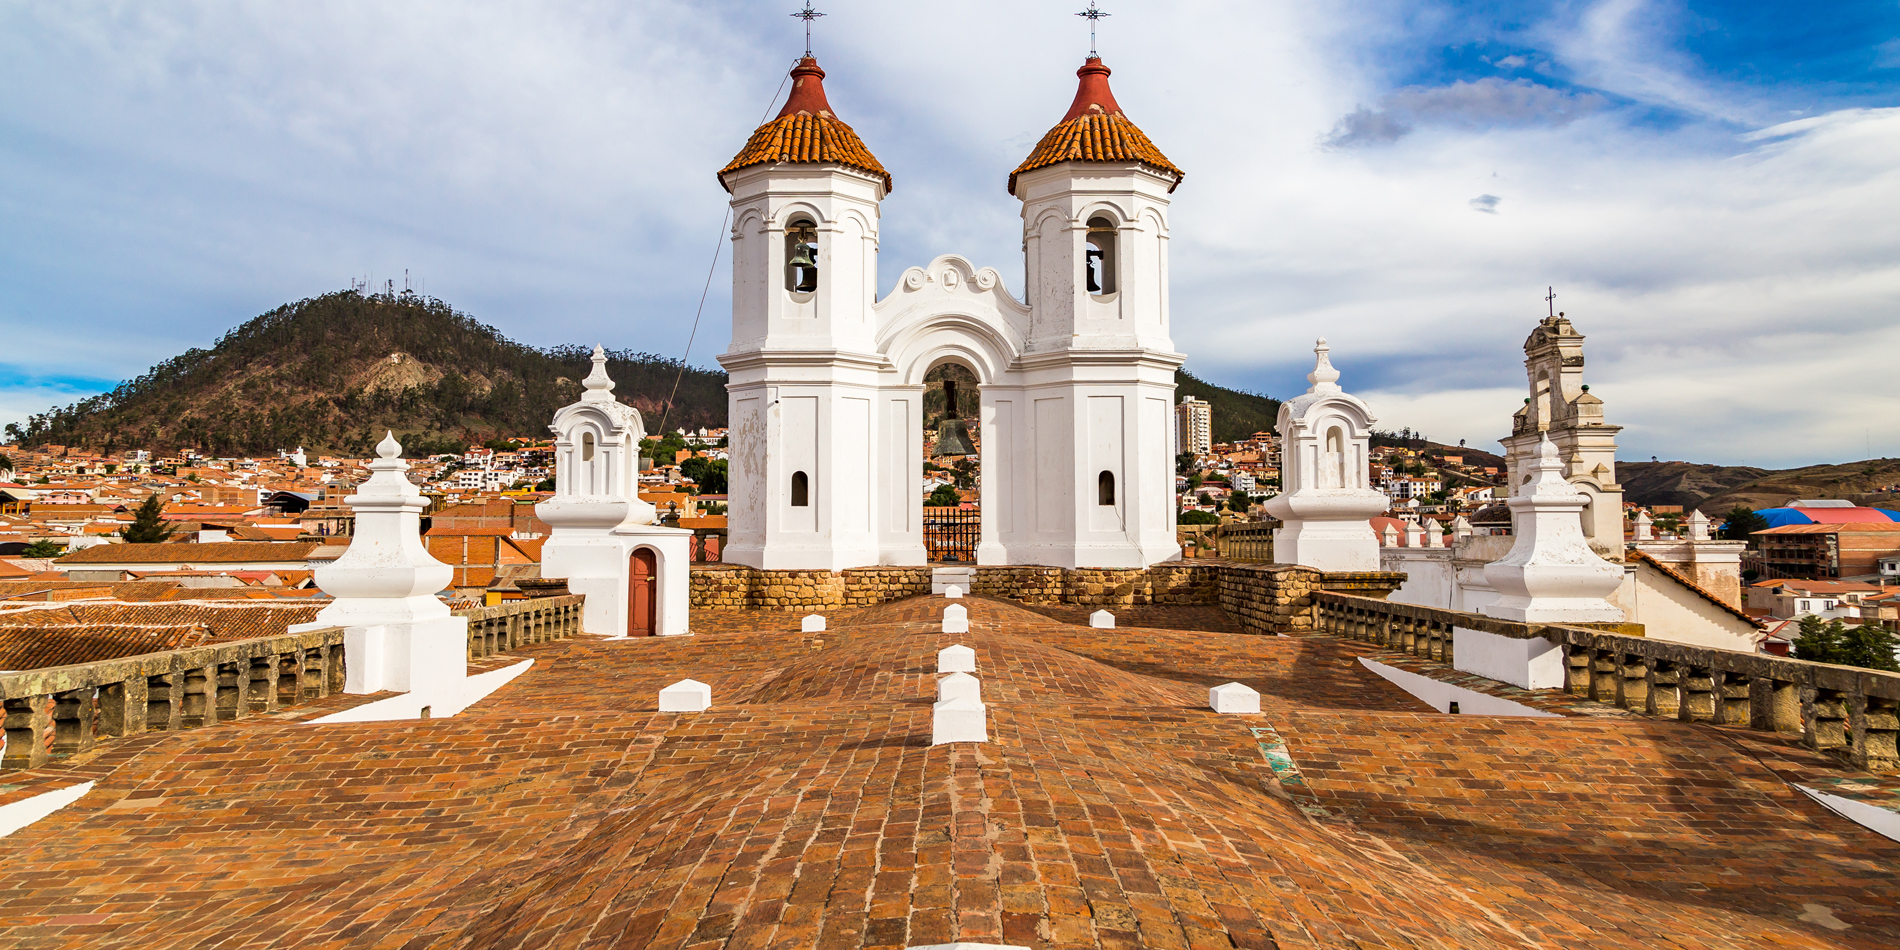 Sucre, where Bolivia's Declaration of Independence was signed.